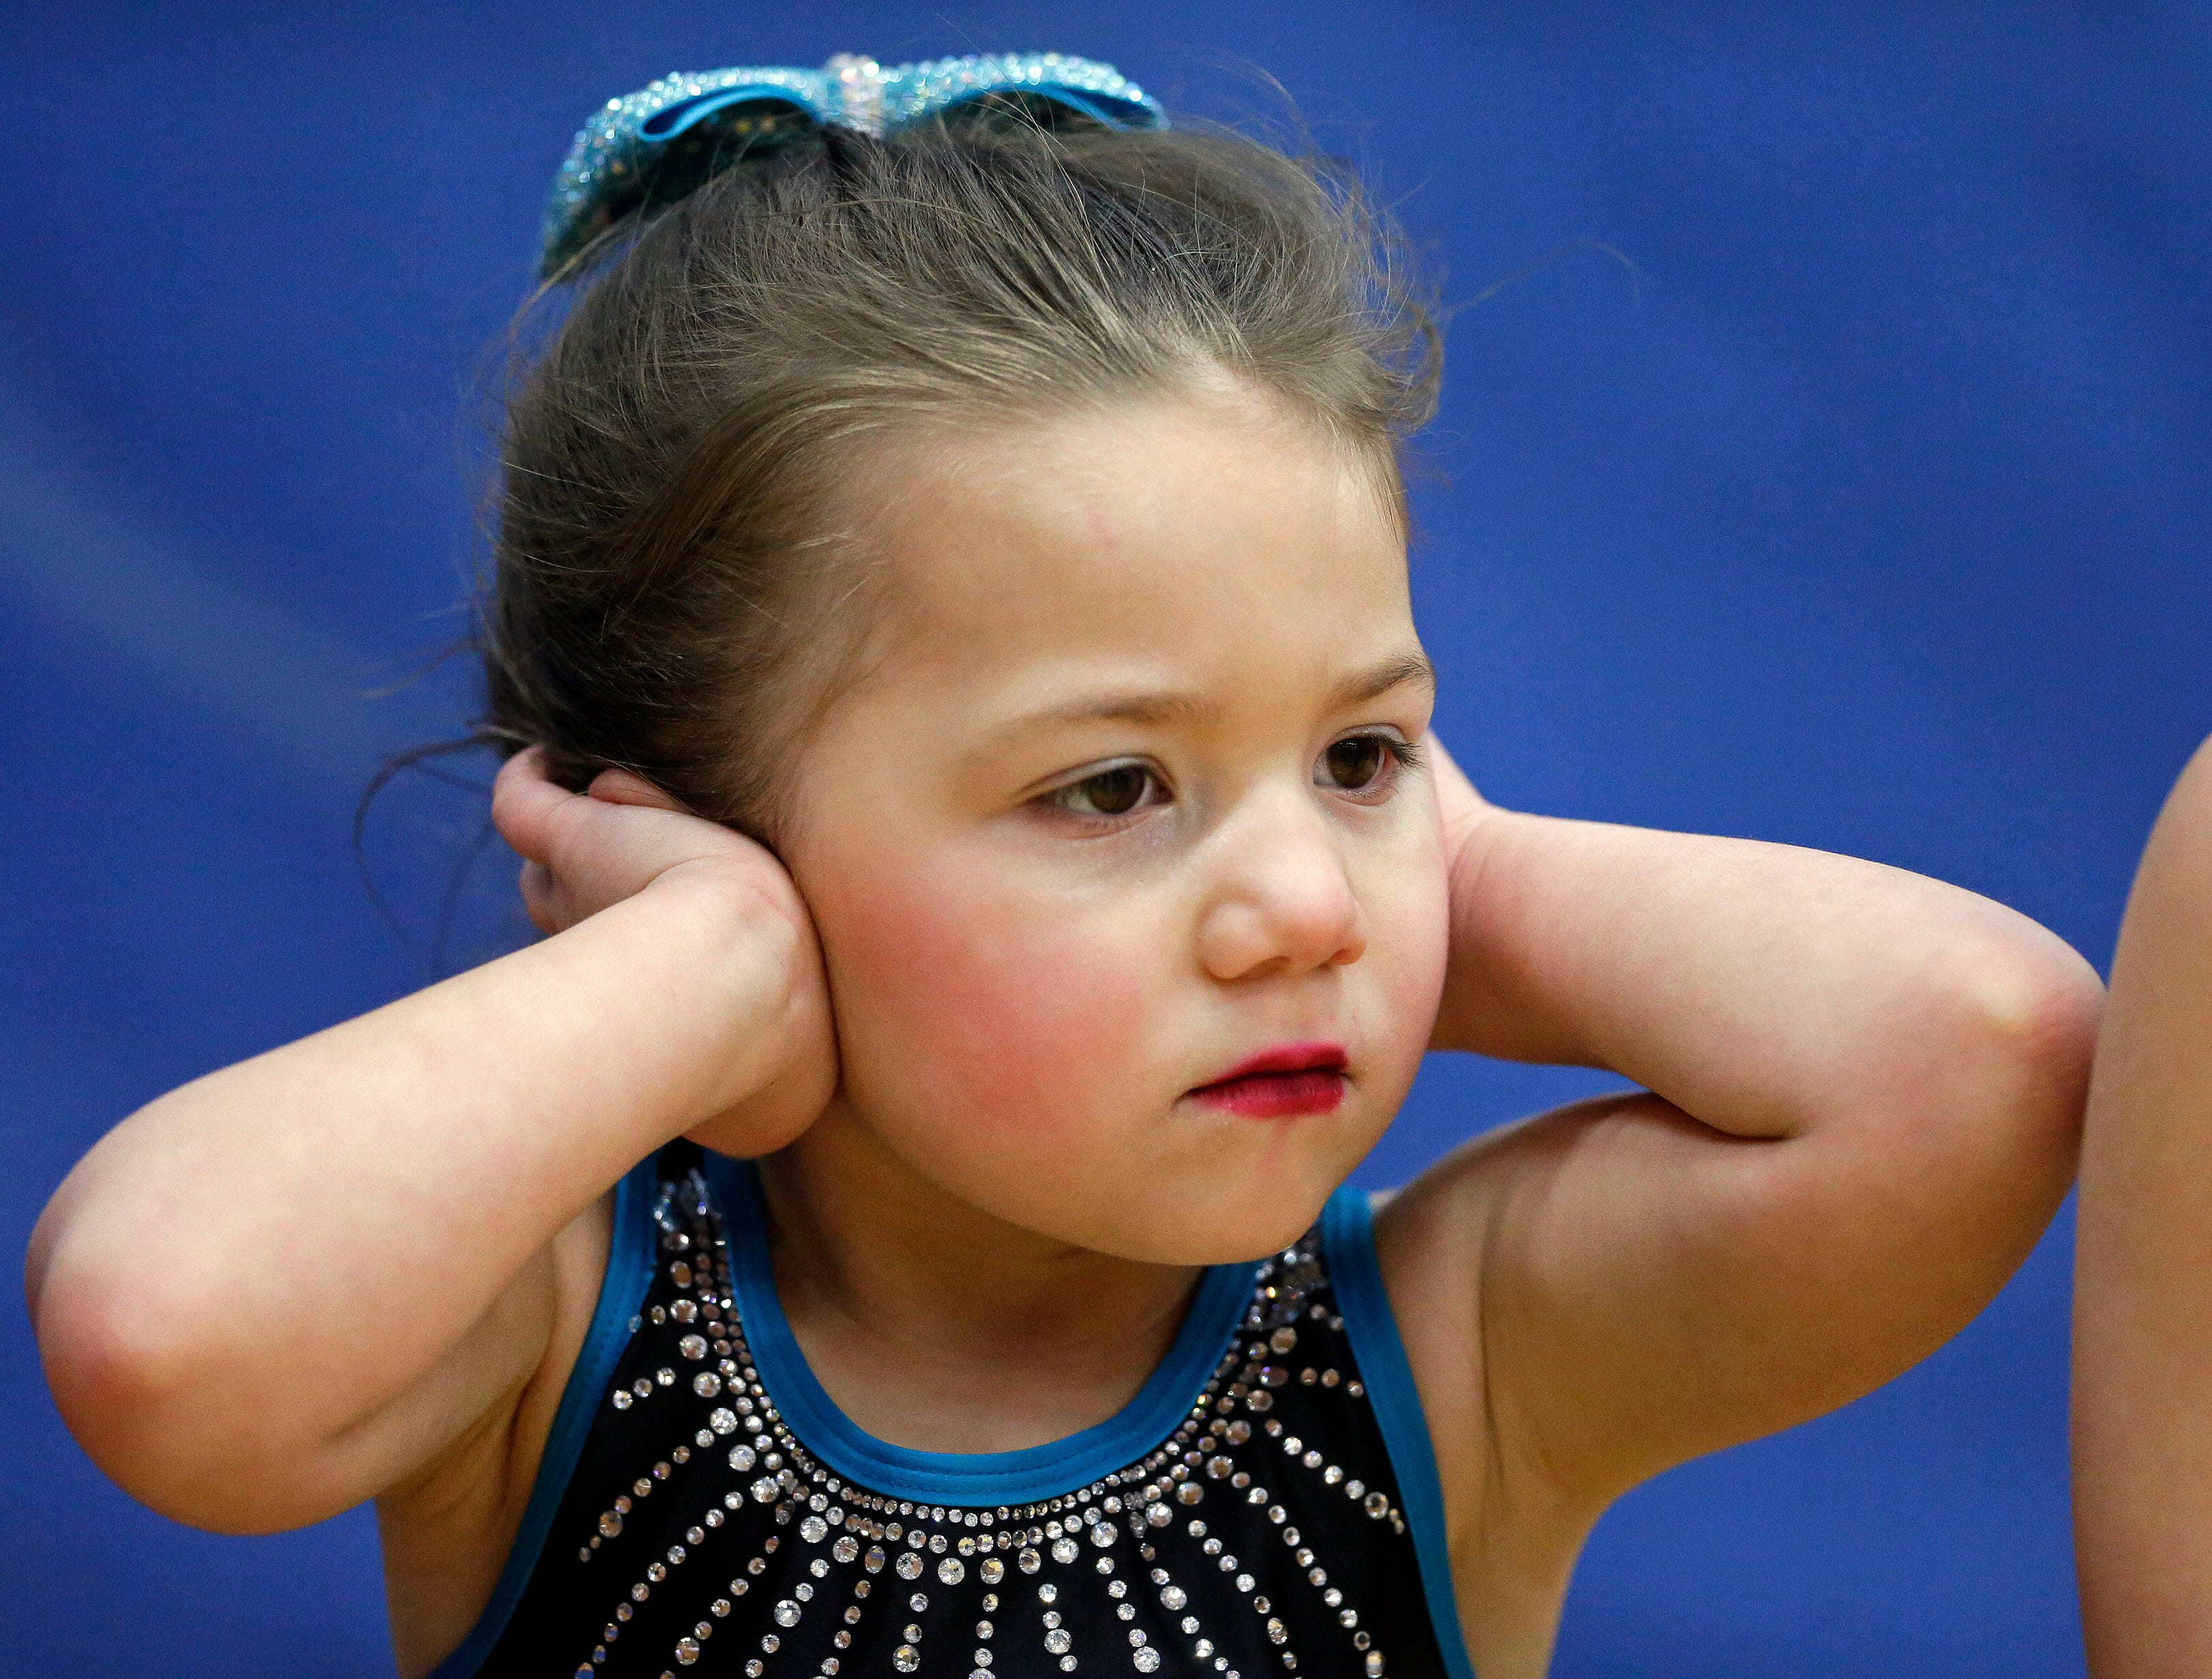 A member of the WIDC Penguins covers her ears as she waits to compete in the Lightning Bolt Explosion Cheer and Dance competition Saturday, January 5, 2019, at Appleton North High School in Appleton, Wis.